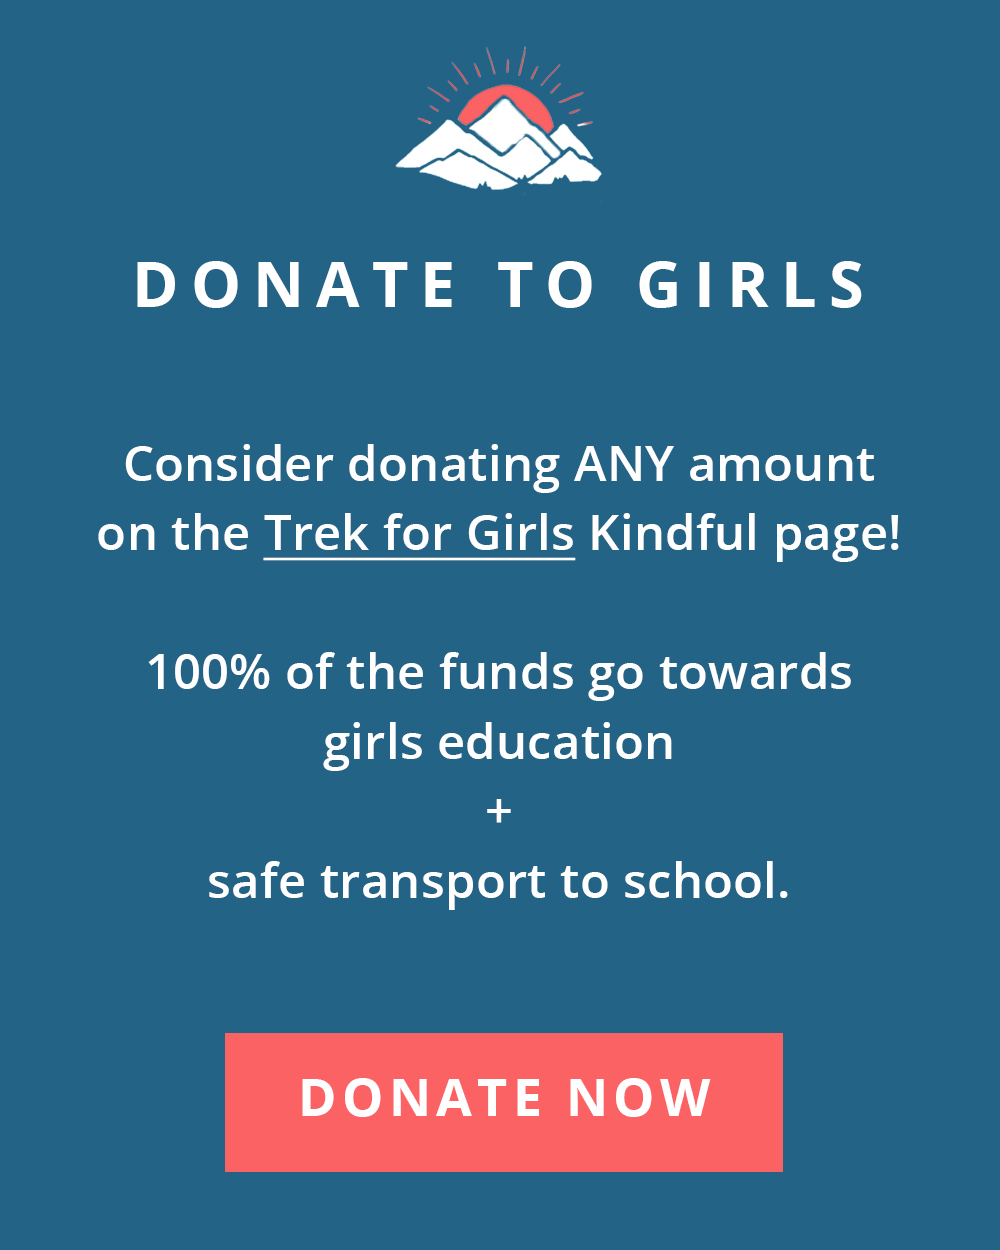 DONATE-TO-GIRLS.jpg